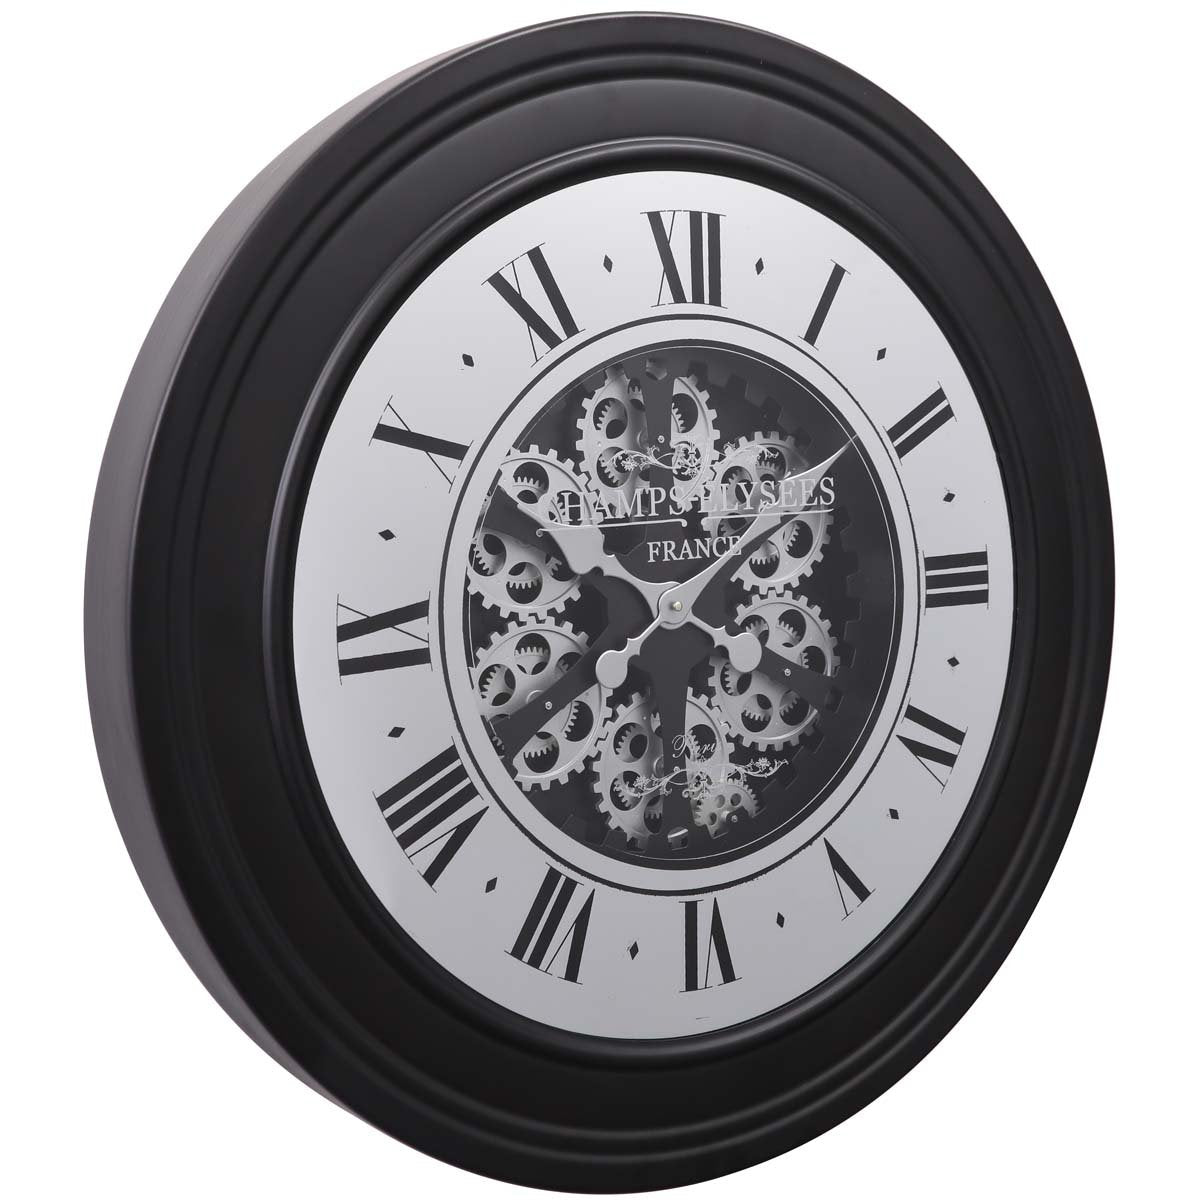 Chilli Decor Champs Elysees Mirrored Black Silver Moving Gears Wall Clock 80cm TQ-Y617 1